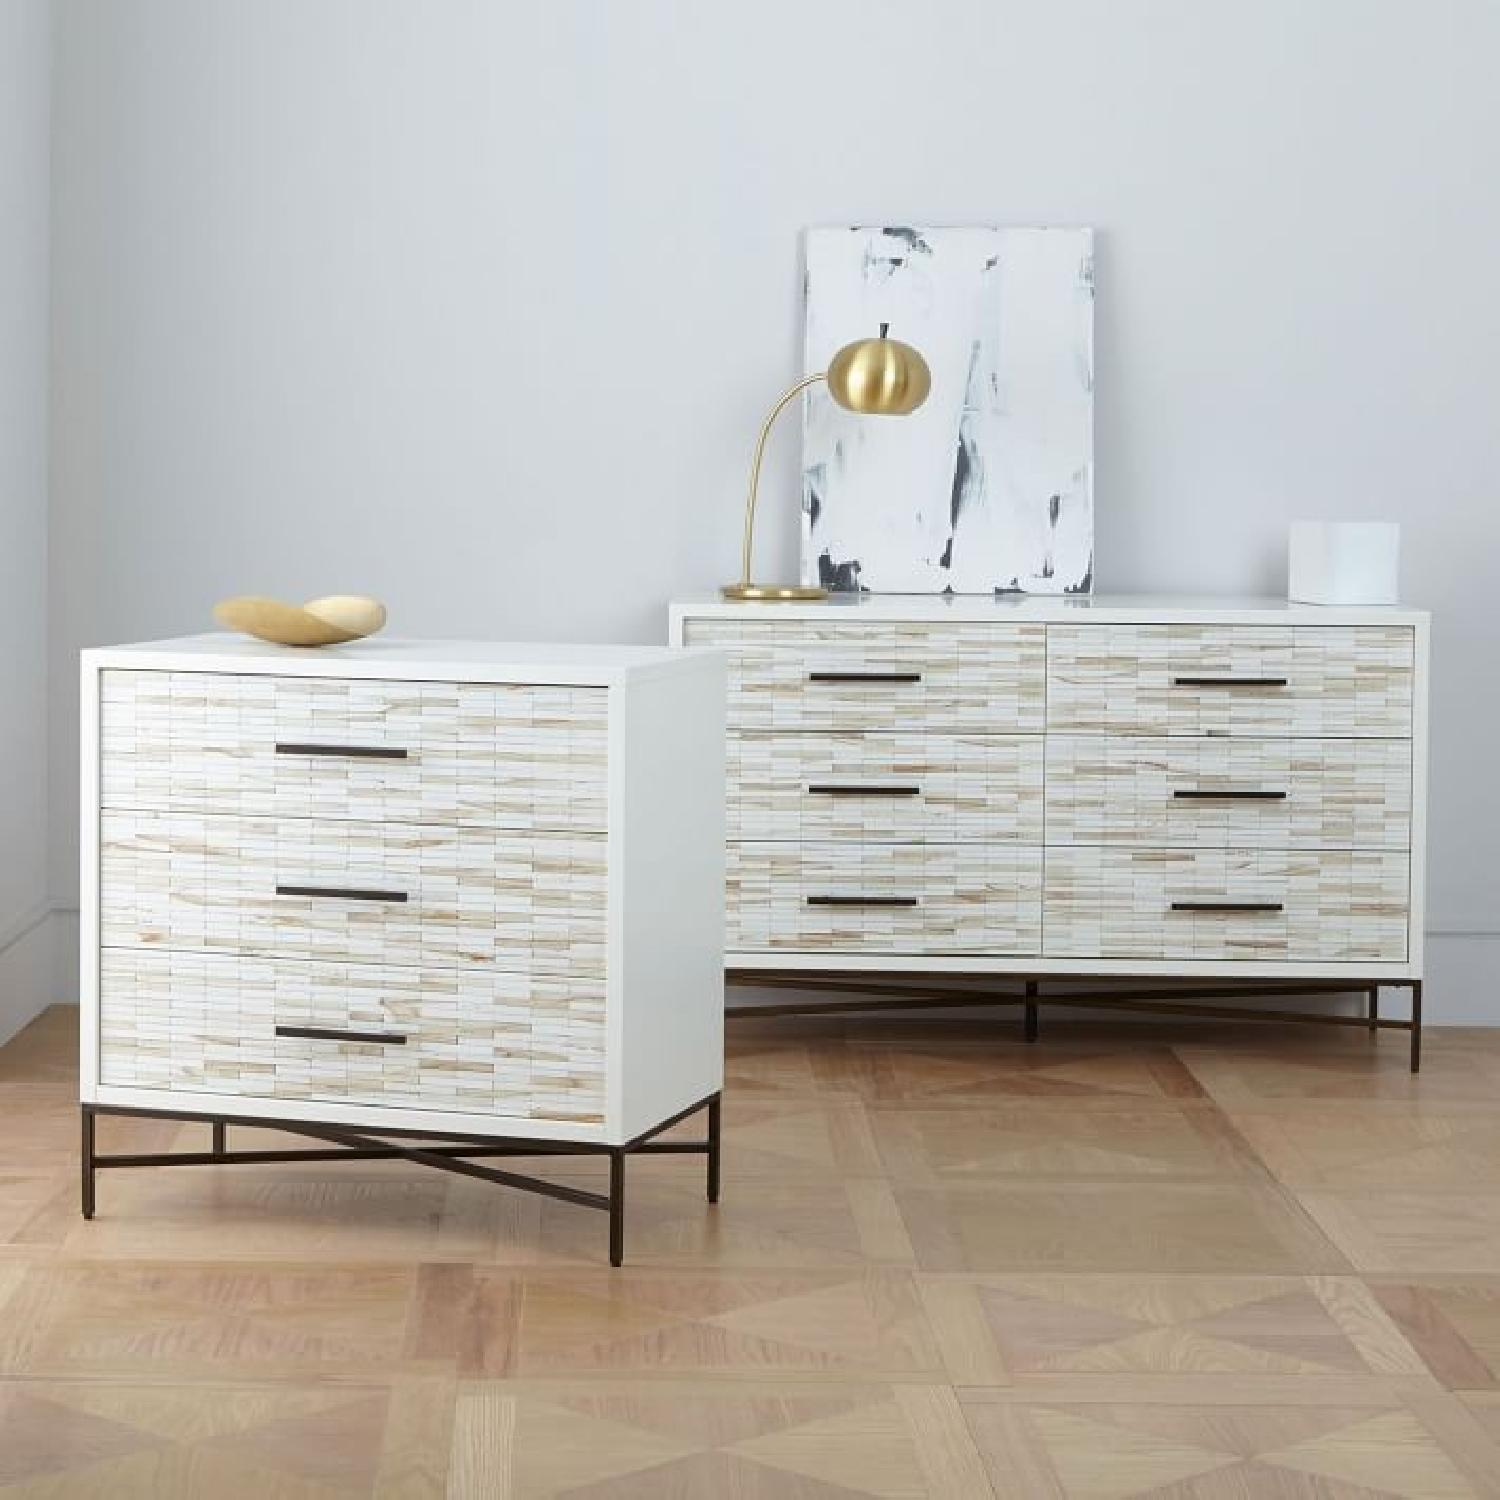 West Elm Wood Tiled 6-Drawer Dresser in Whitewash-1